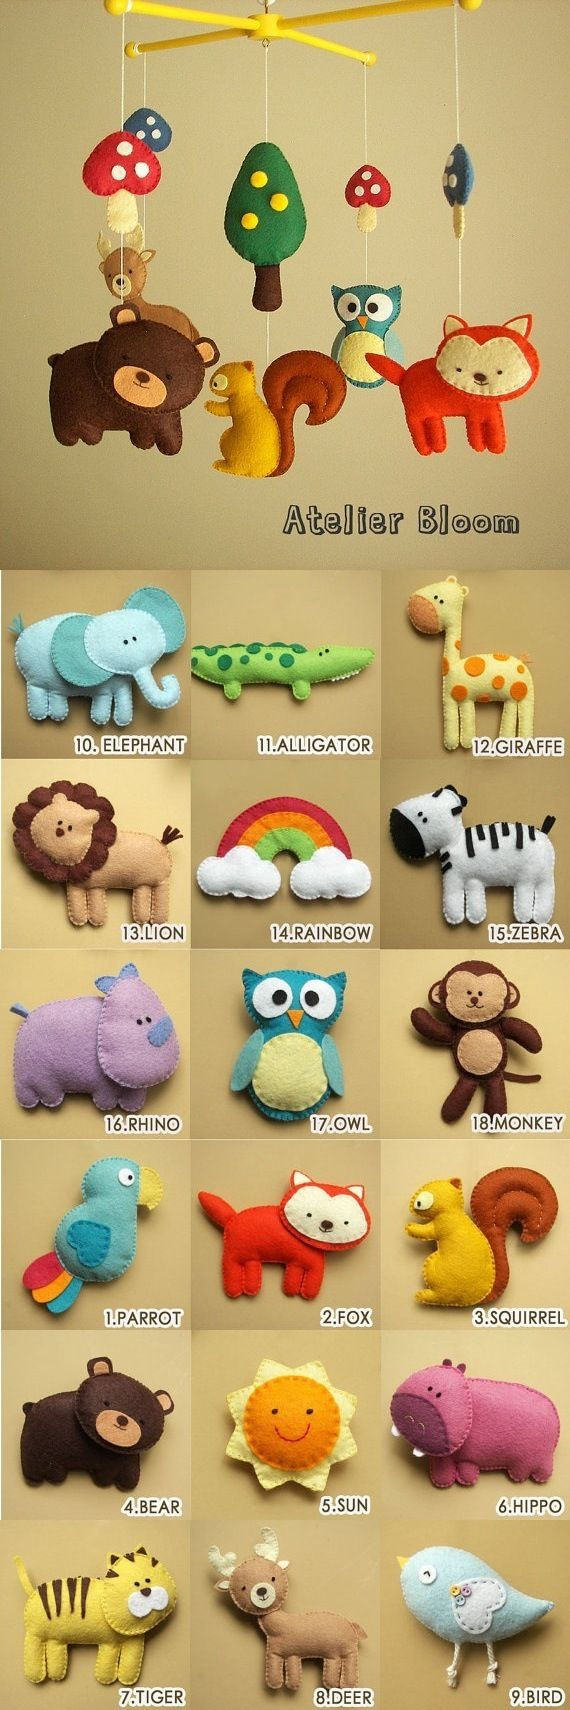 Woodland animals - mobile so cute for a baby shower gift!